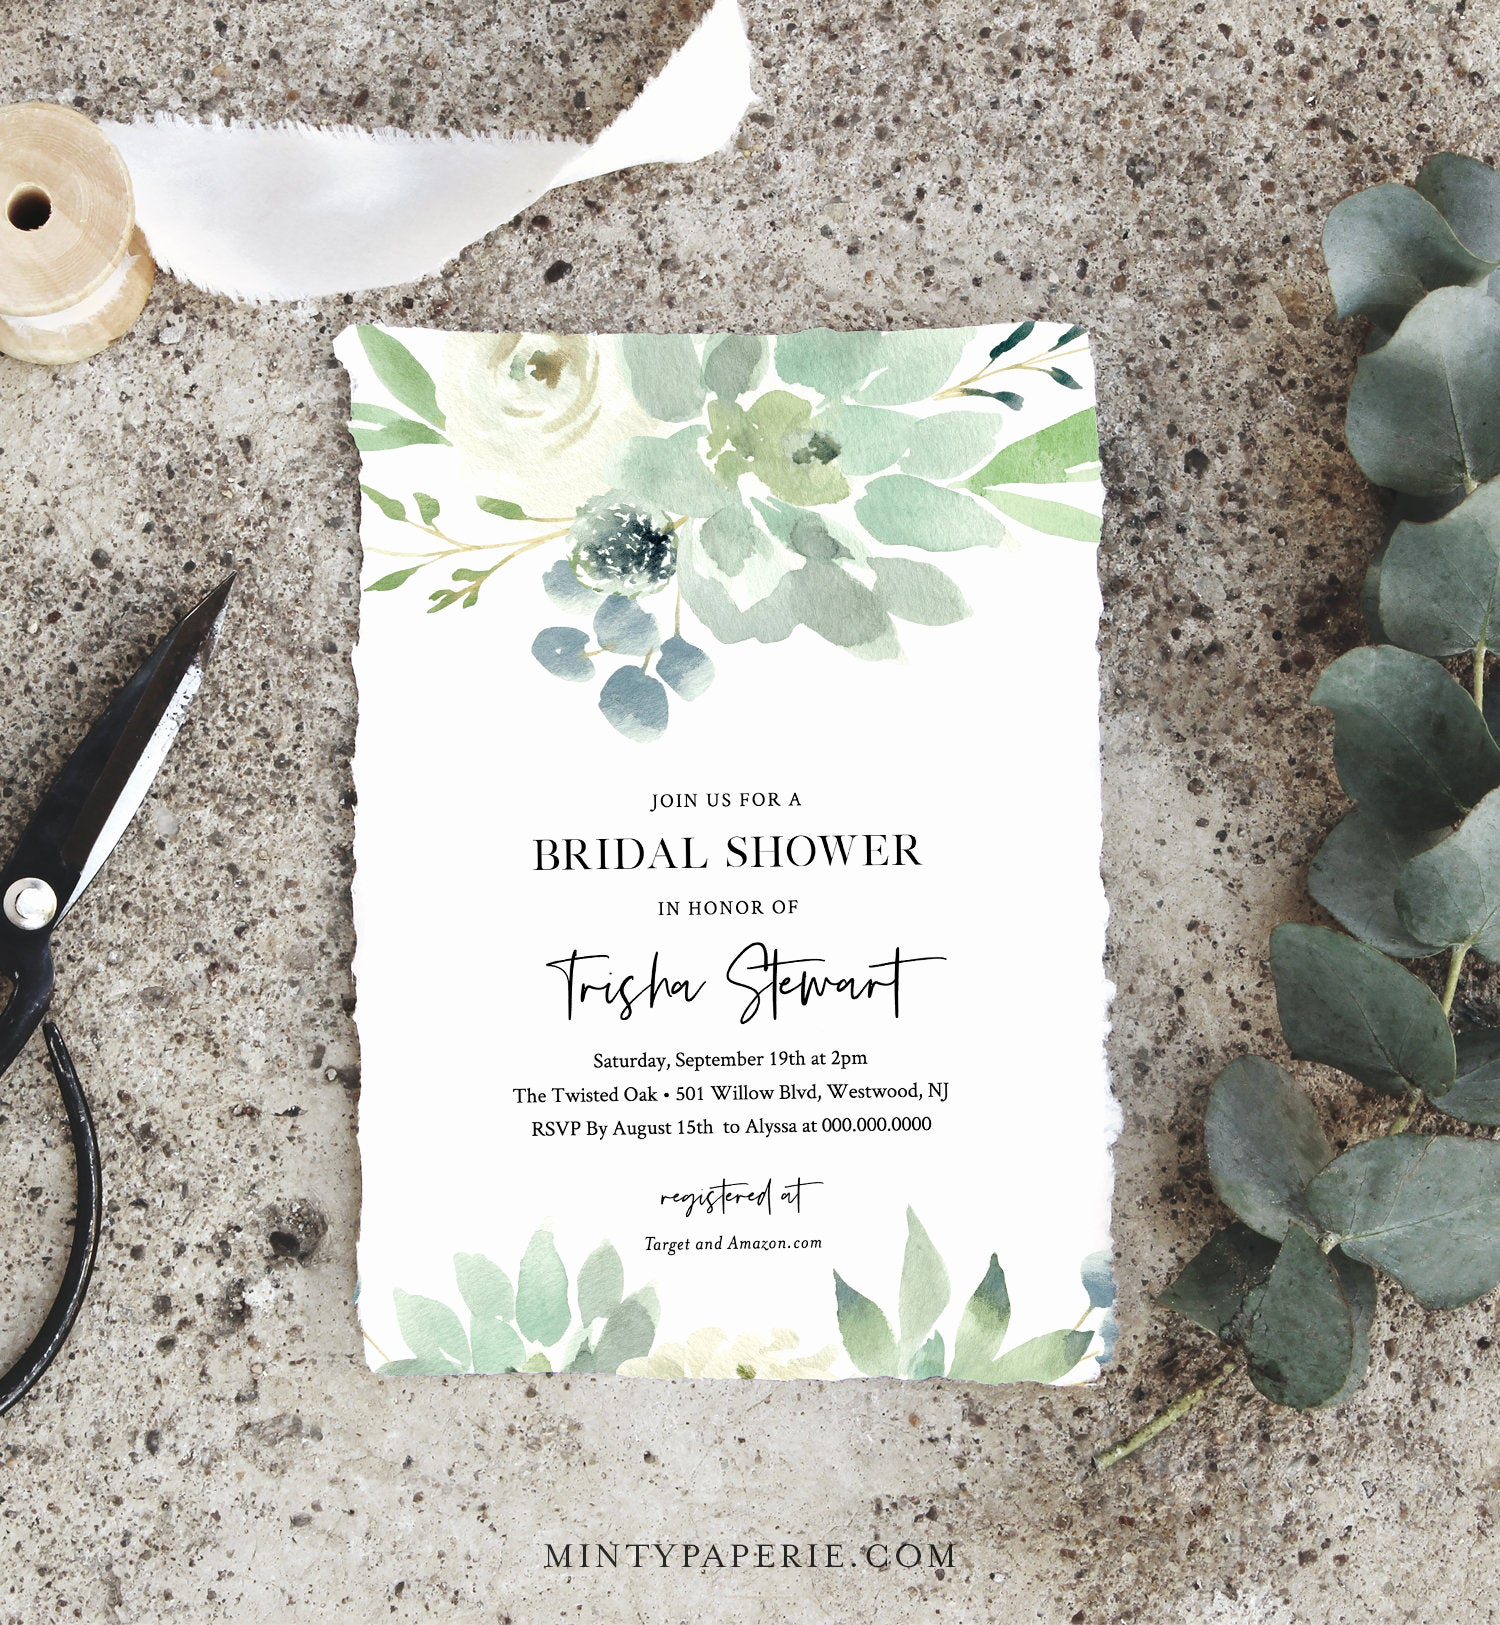 Diy Bridal Shower Invitation Templates Luxury Succulent Bridal Shower Invitation Template Delicate